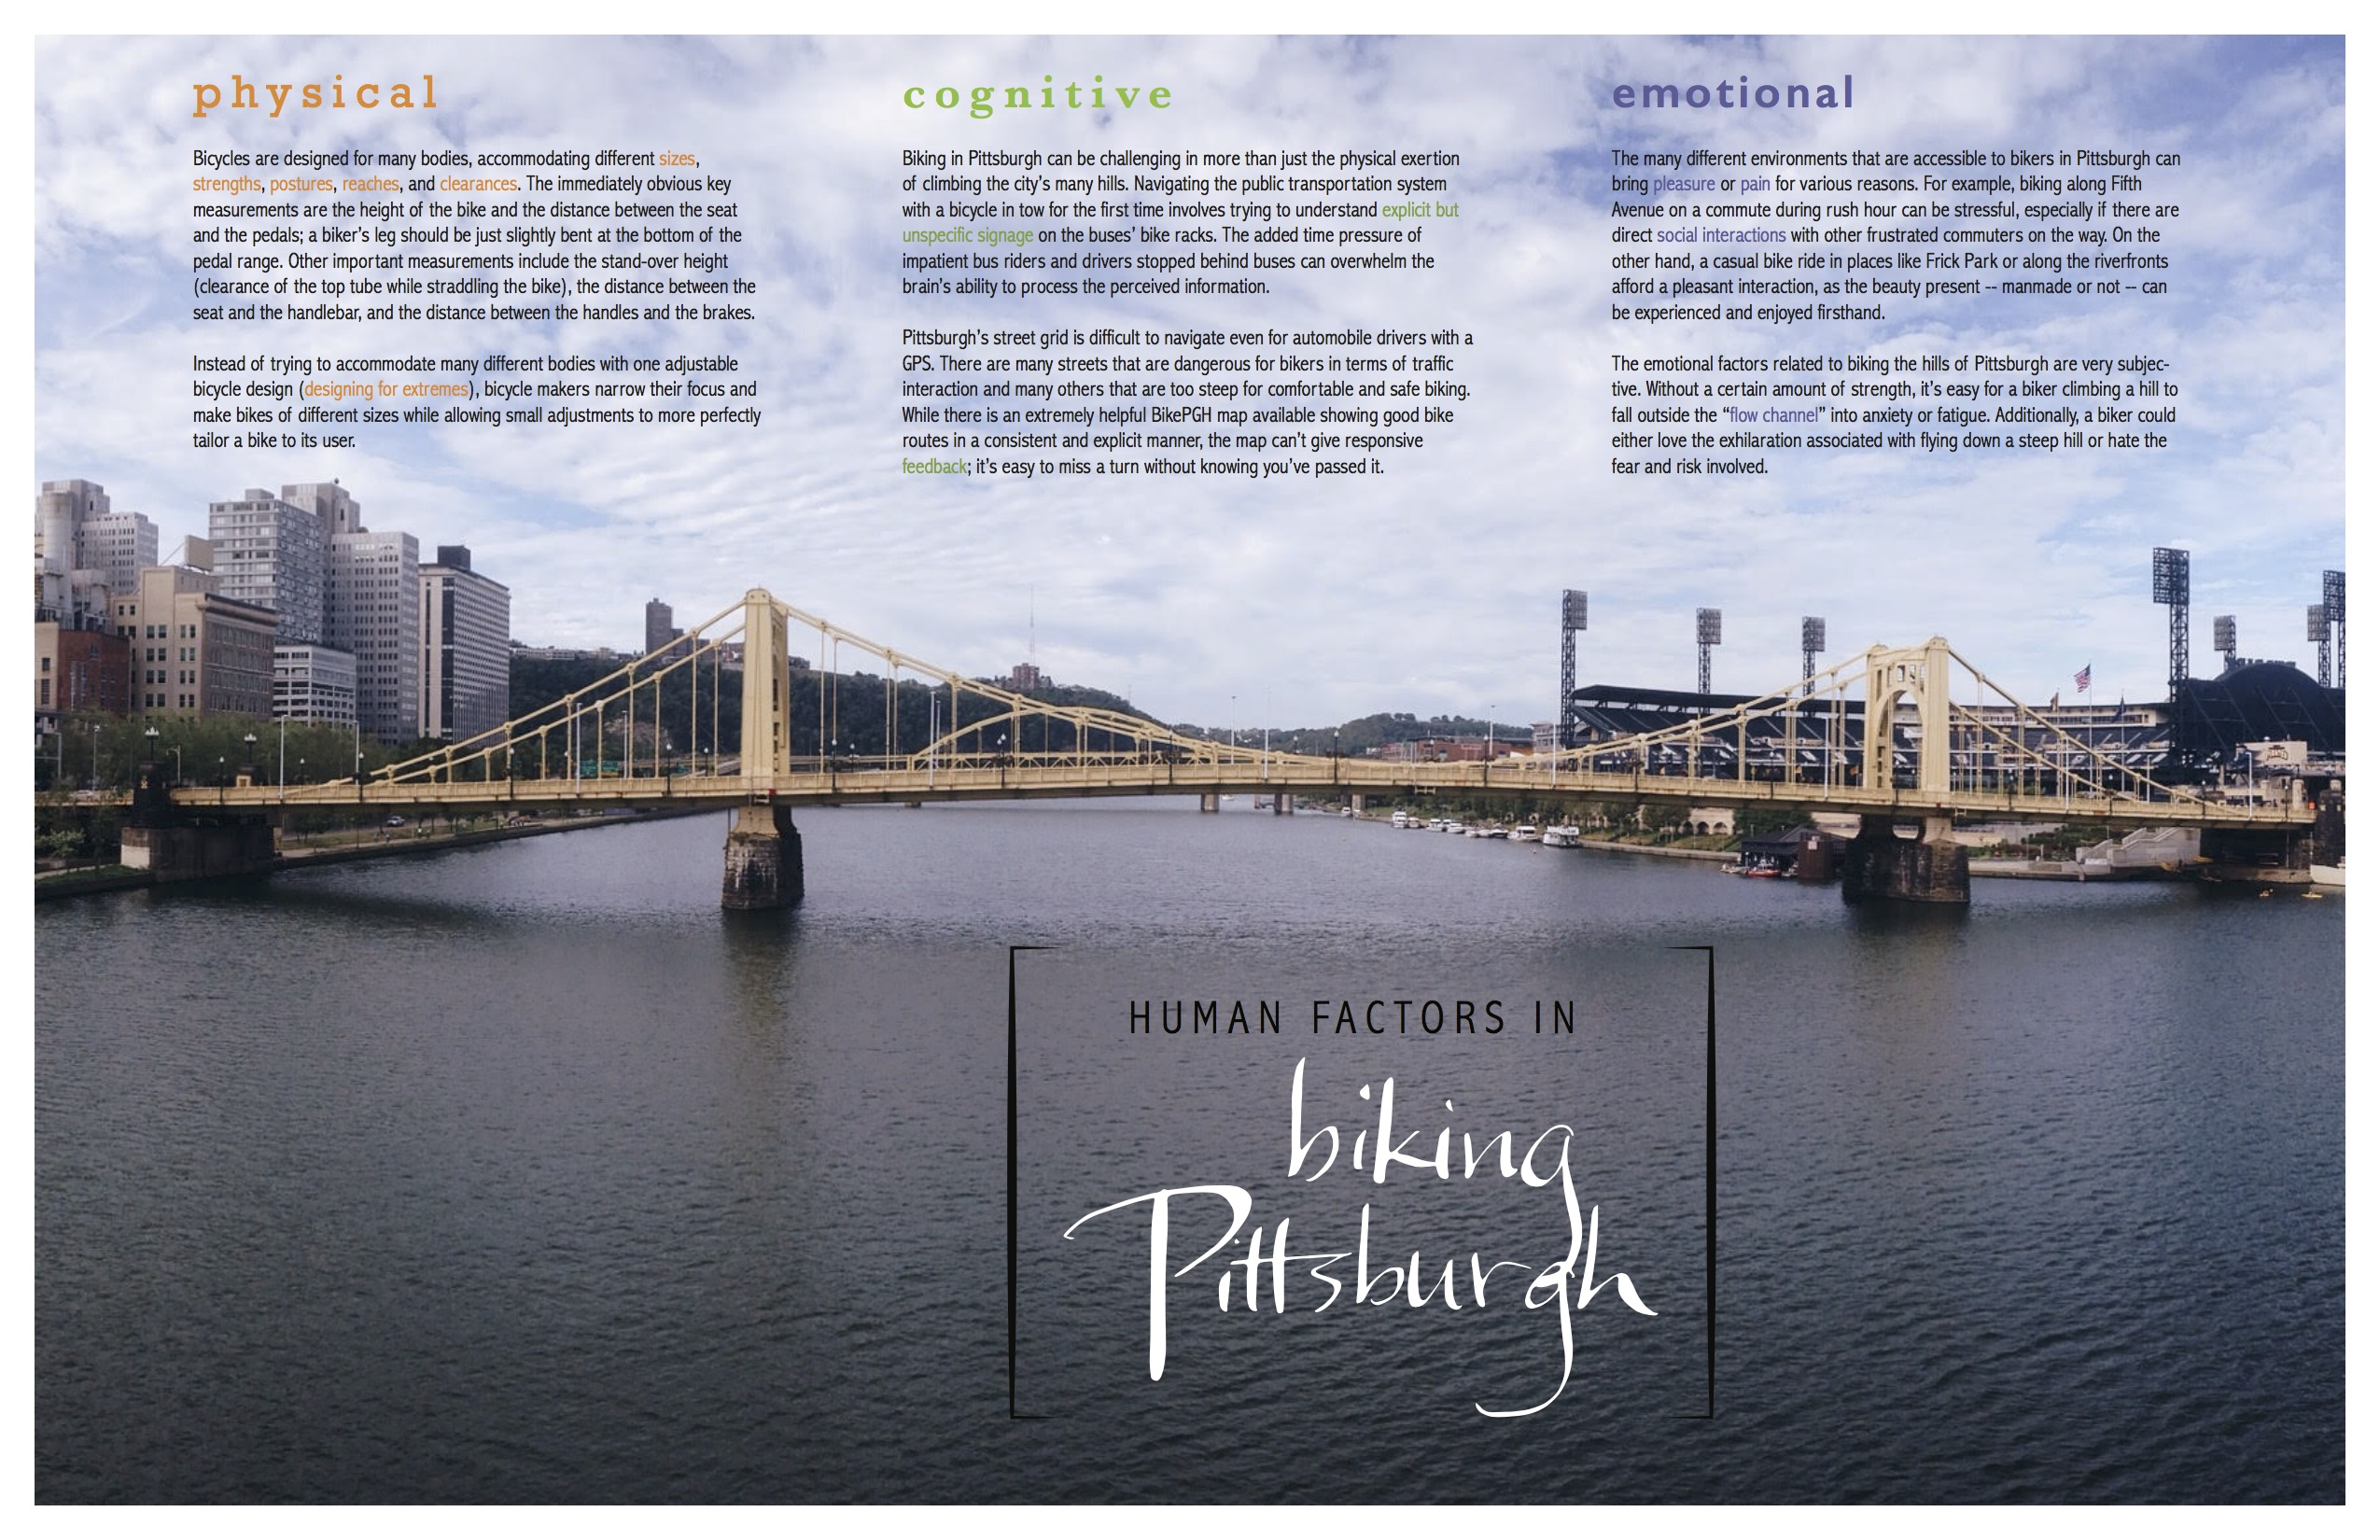 poster explaining some physical, cognitive, and emotional human factors surrounding biking in Pittsburgh